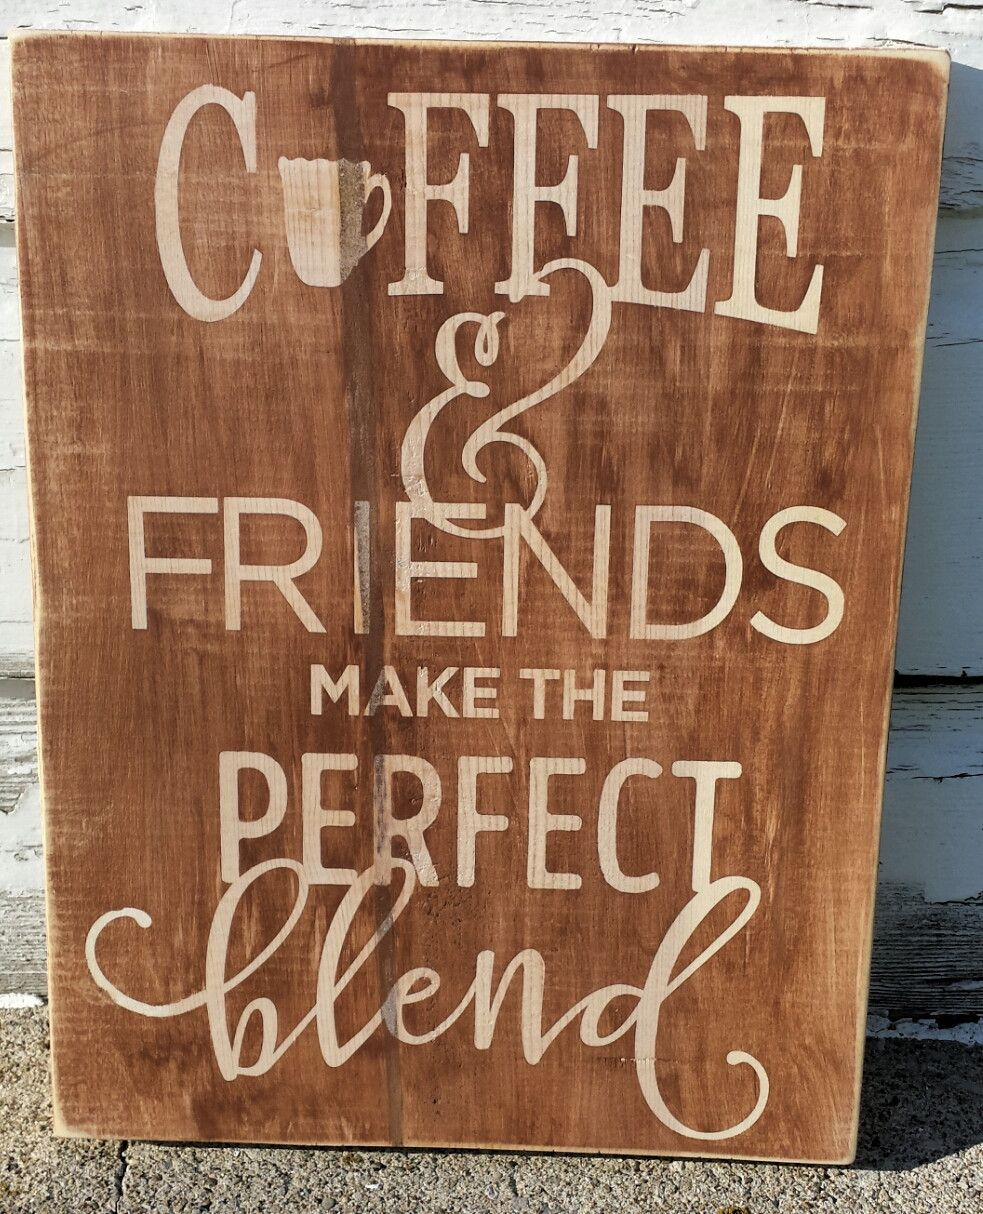 Coffee U0026 Friends The Perfect Blend Sign X Wooden Sign Cute And Funny,  Lighthearted Sentiment, Perfect For A Kitchen Or Dining Room.